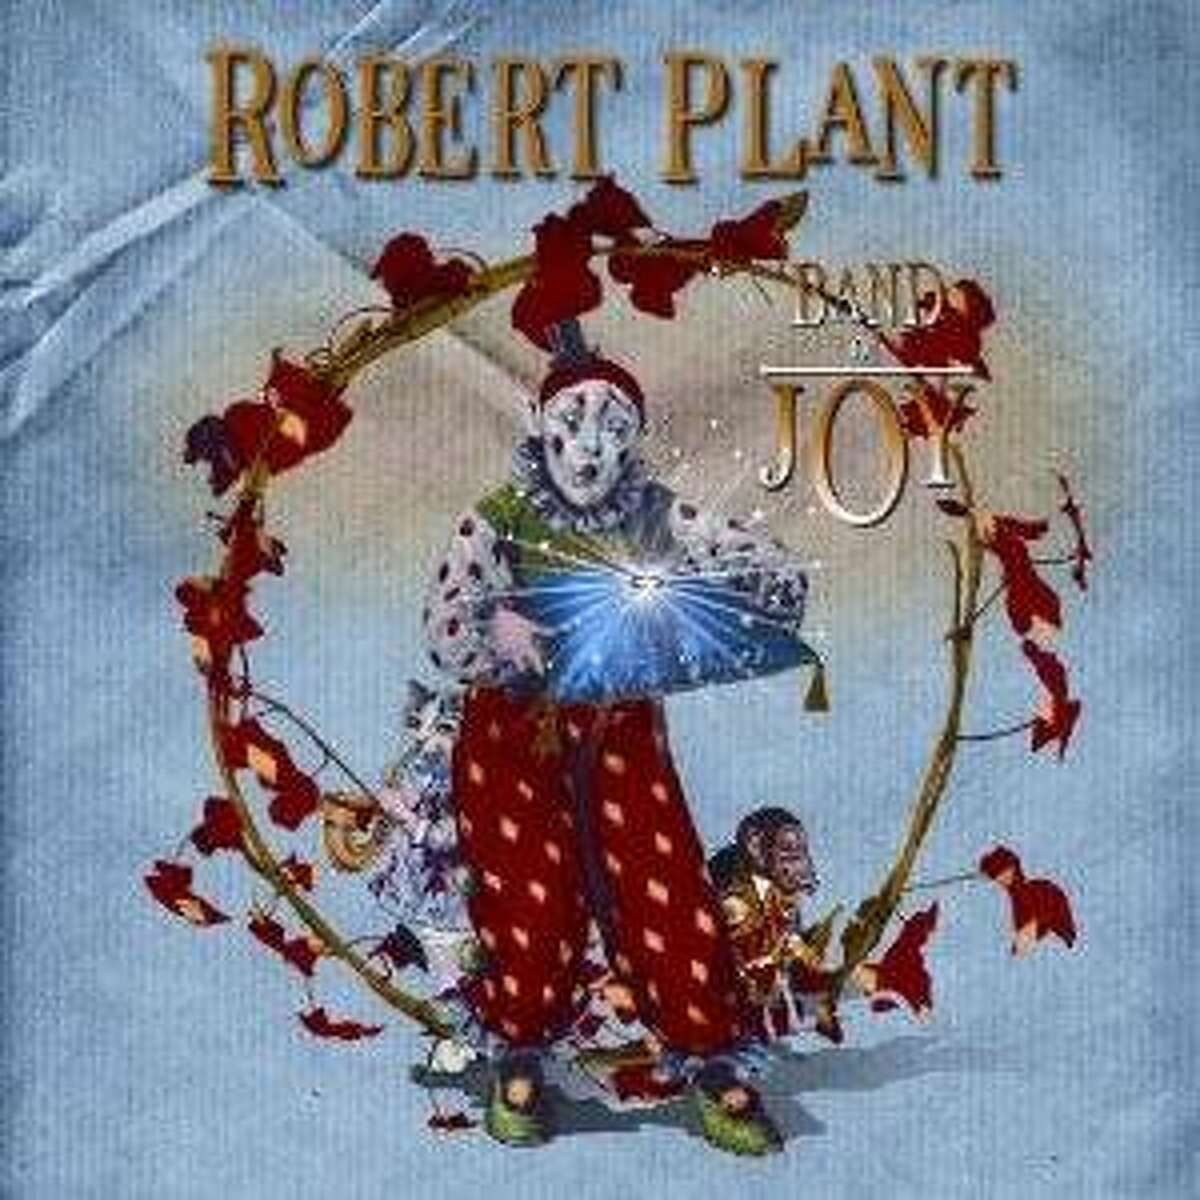 cd cover BAND OF JOY by ROBERT PLANT